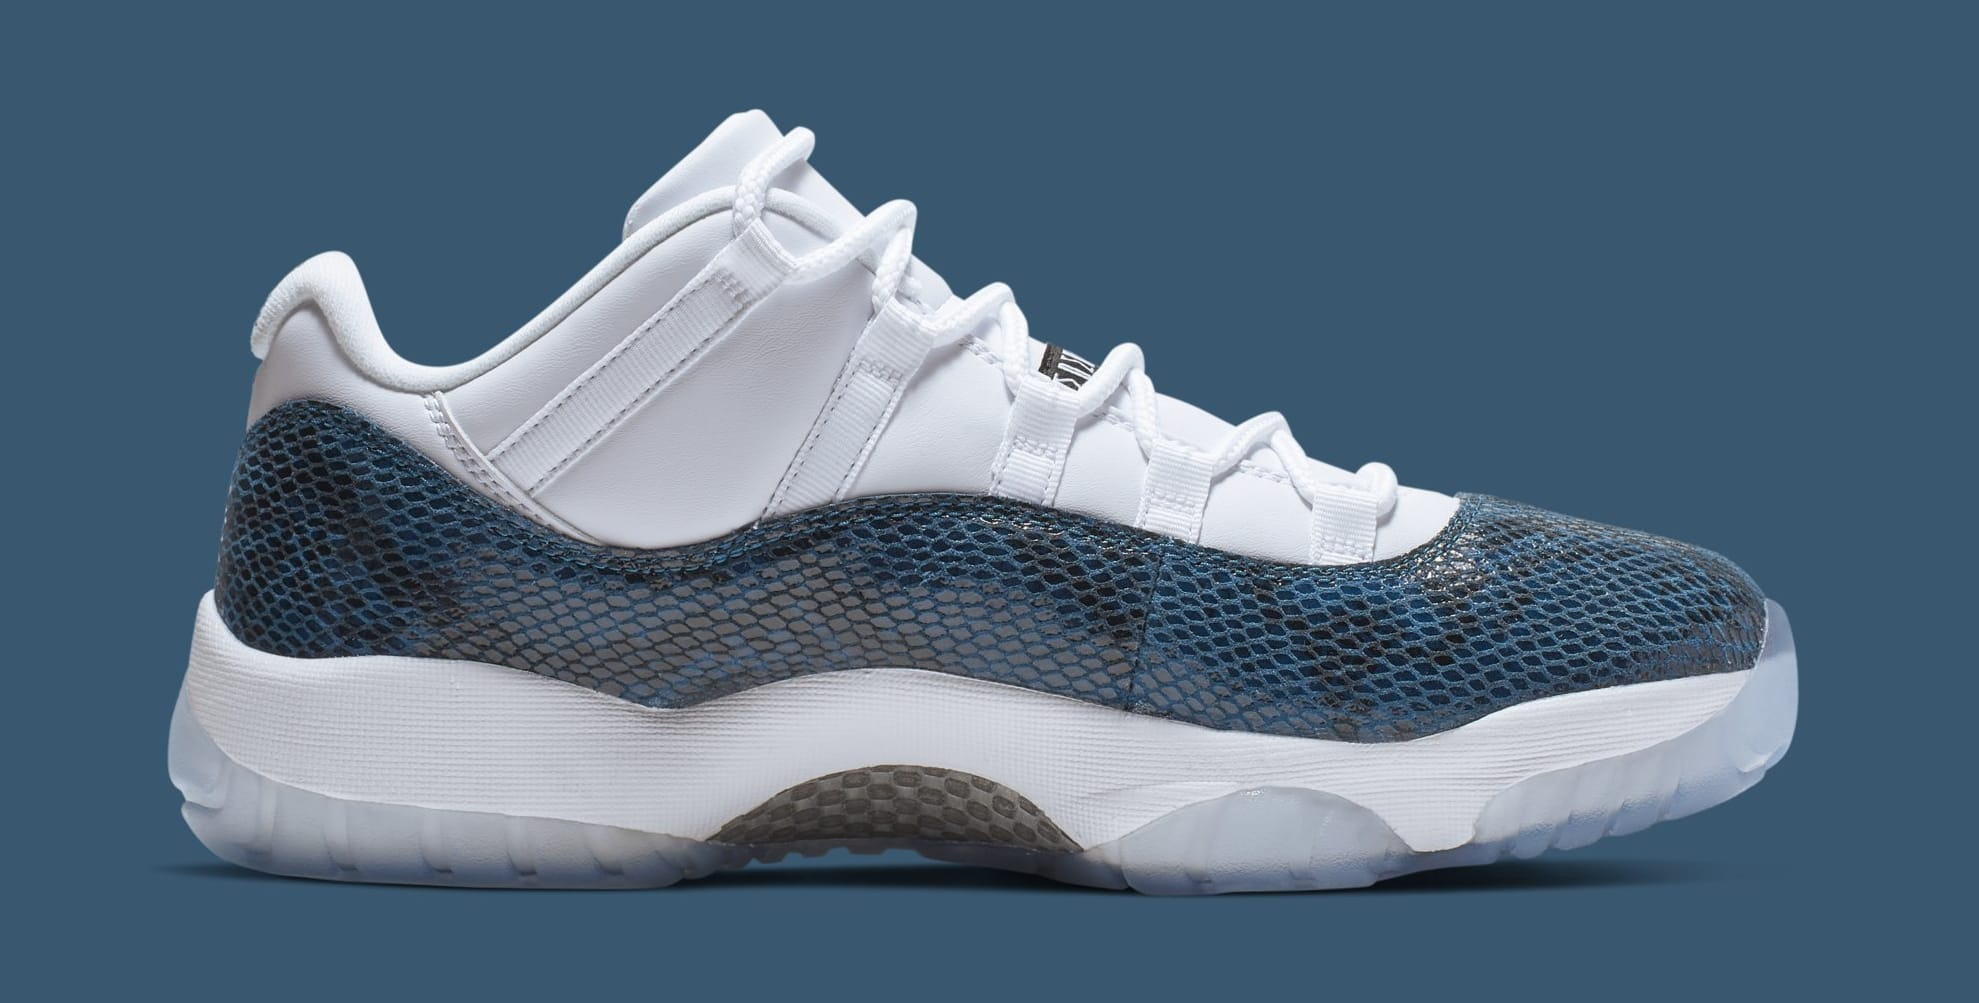 low cost d4c3e fb464 Image via Nike Air Jordan 11 Low  Blue Snakeskin  CD6846-102 (Medial)